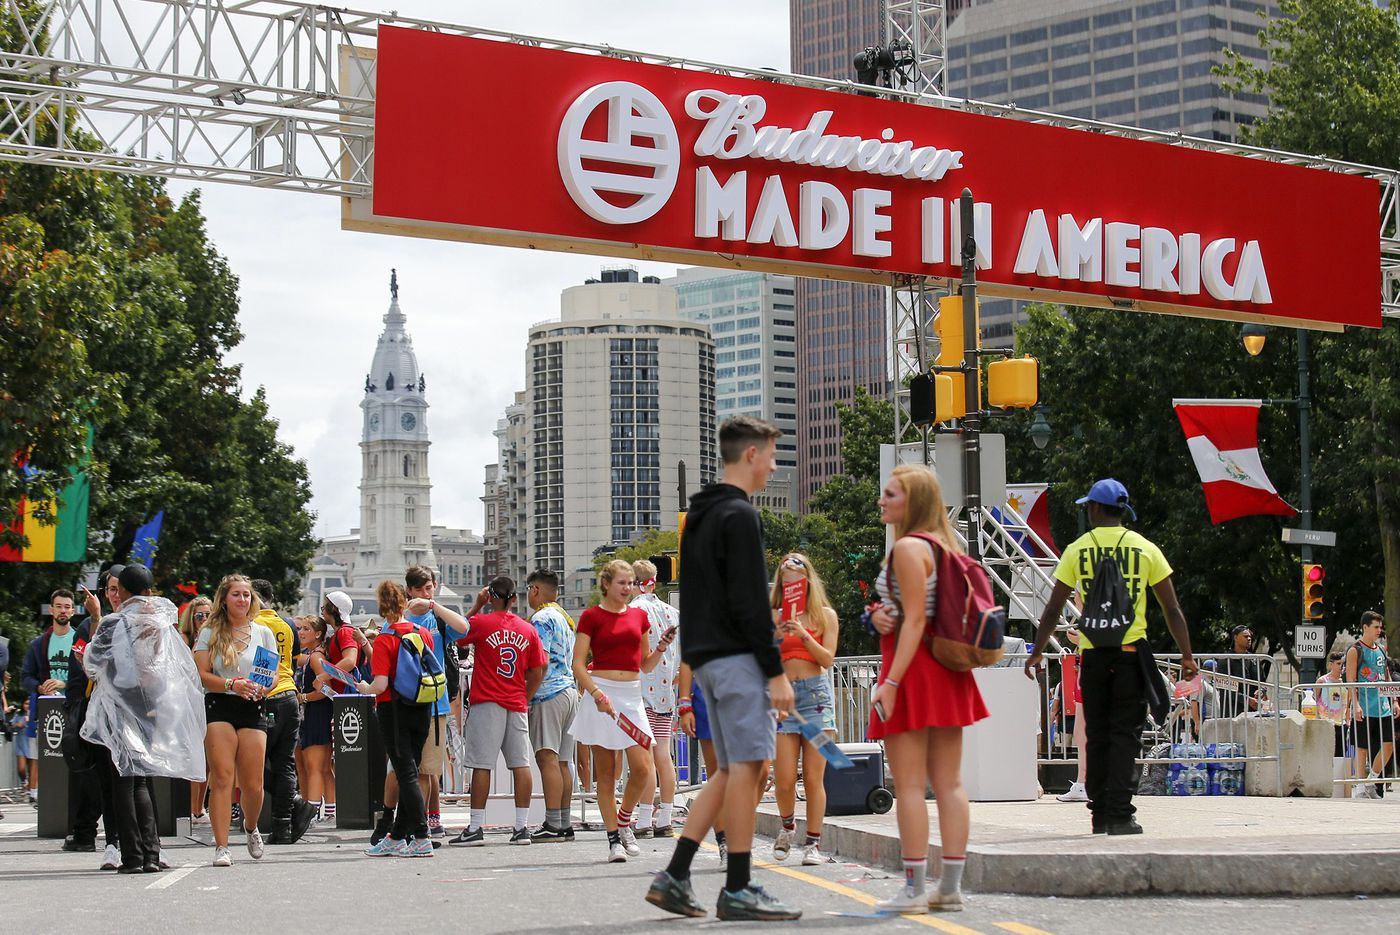 Made in America food contest will pick vendors for this year's festival